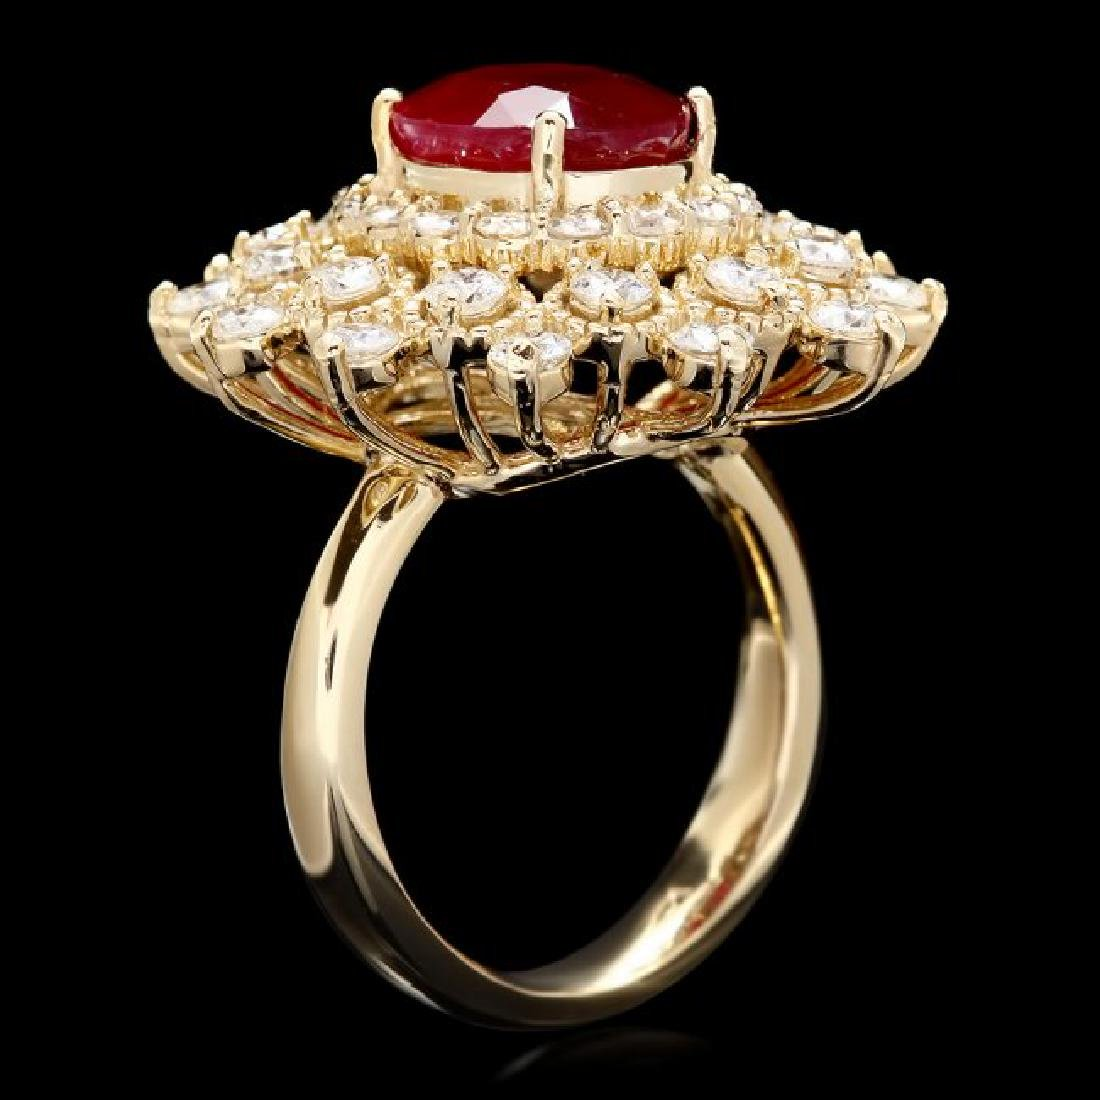 14k Yellow Gold 4.00ct Ruby 2.00ct Diamond Ring - 3